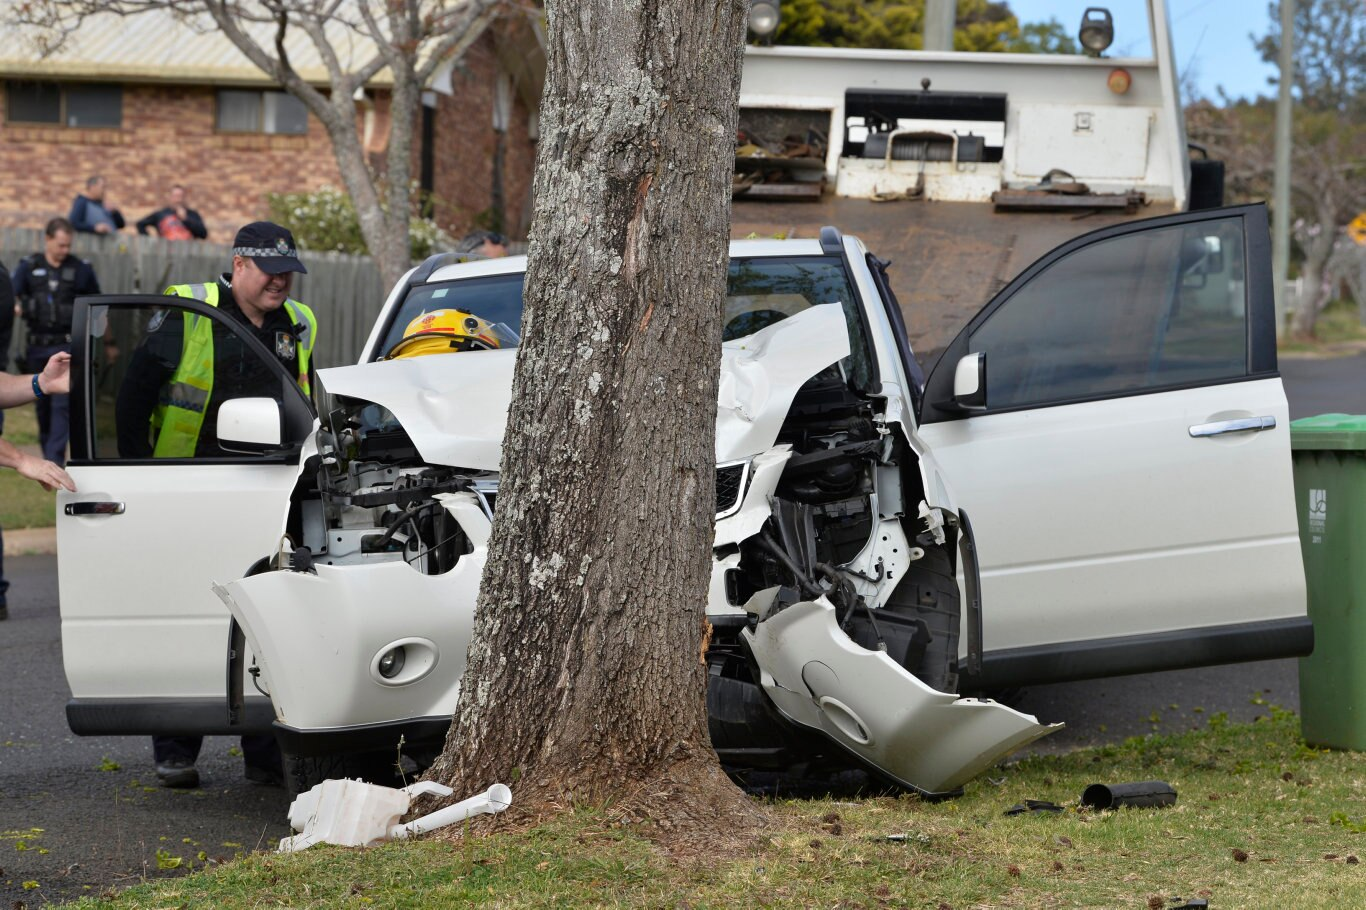 Emergency services at the scene where a woman, aged in her 30s, was injured after she crashed her car into a tree in Wine Drive, Tuesday, September 8, 2020. Picture: Kevin Farmer